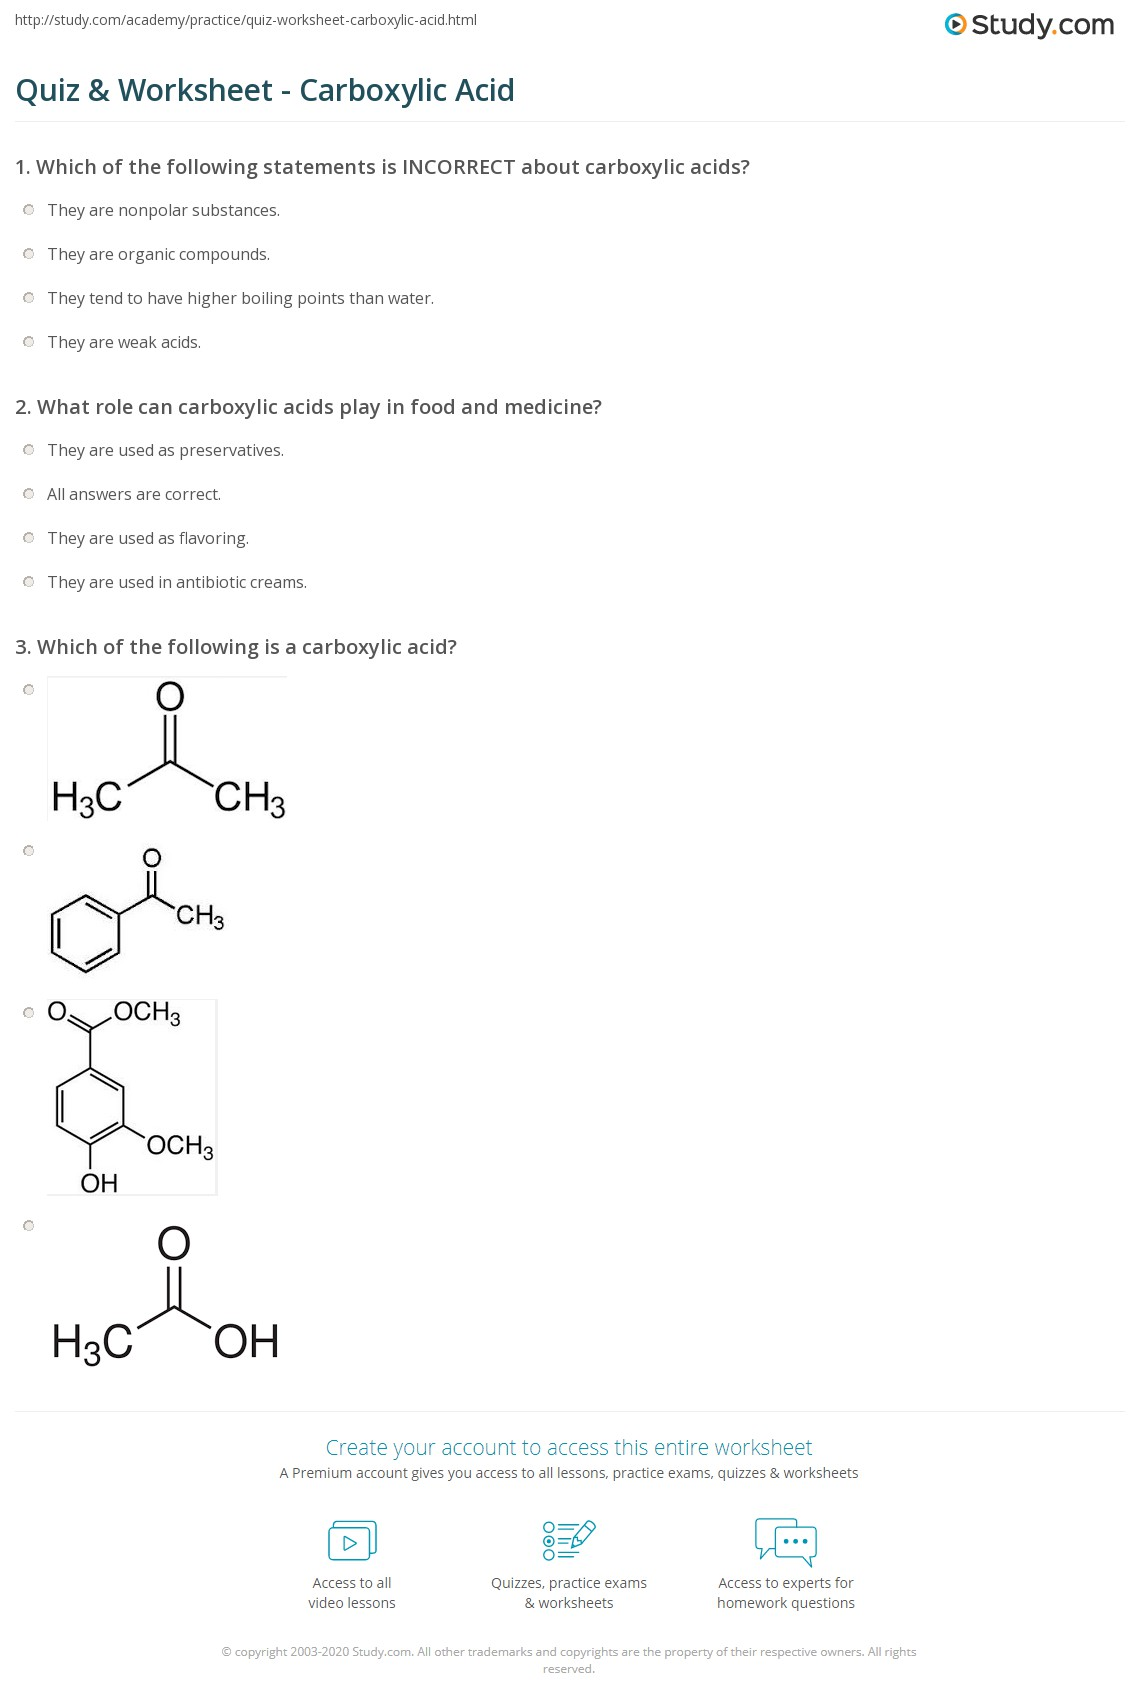 Quiz & Worksheet - Carboxylic Acid | Study.com